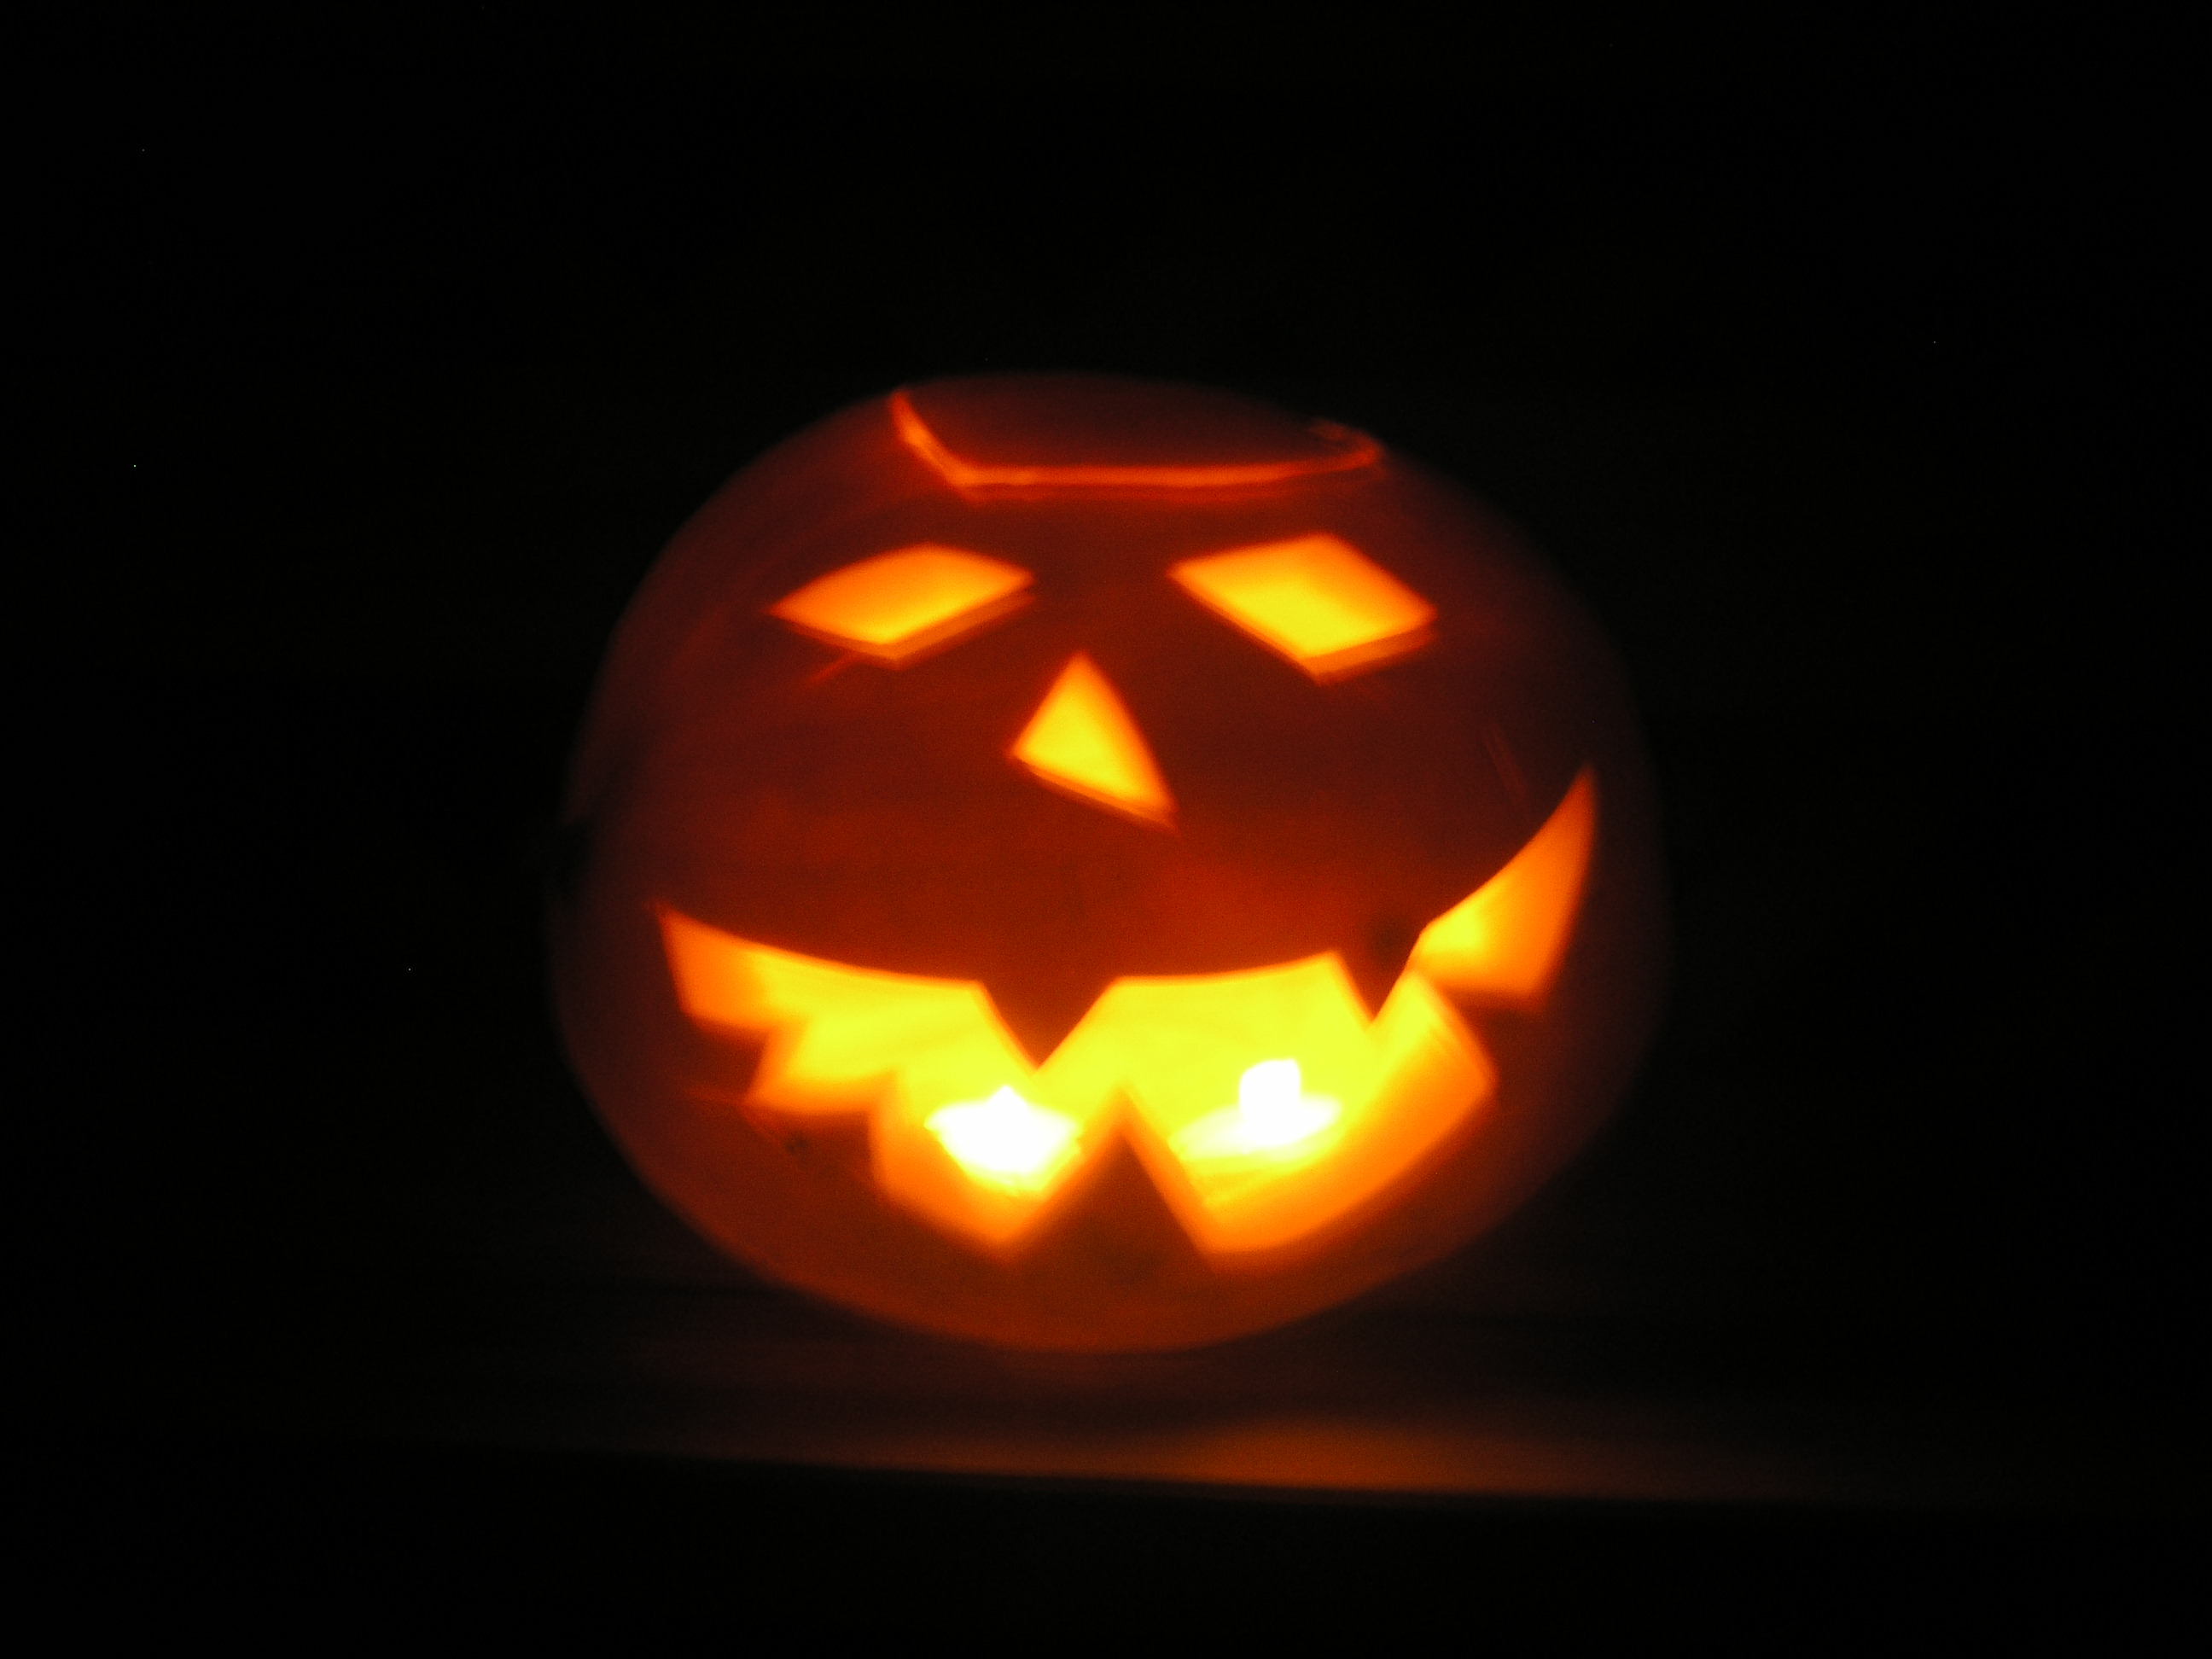 the tradition began in the early 19th century - The Tradition Of Halloween